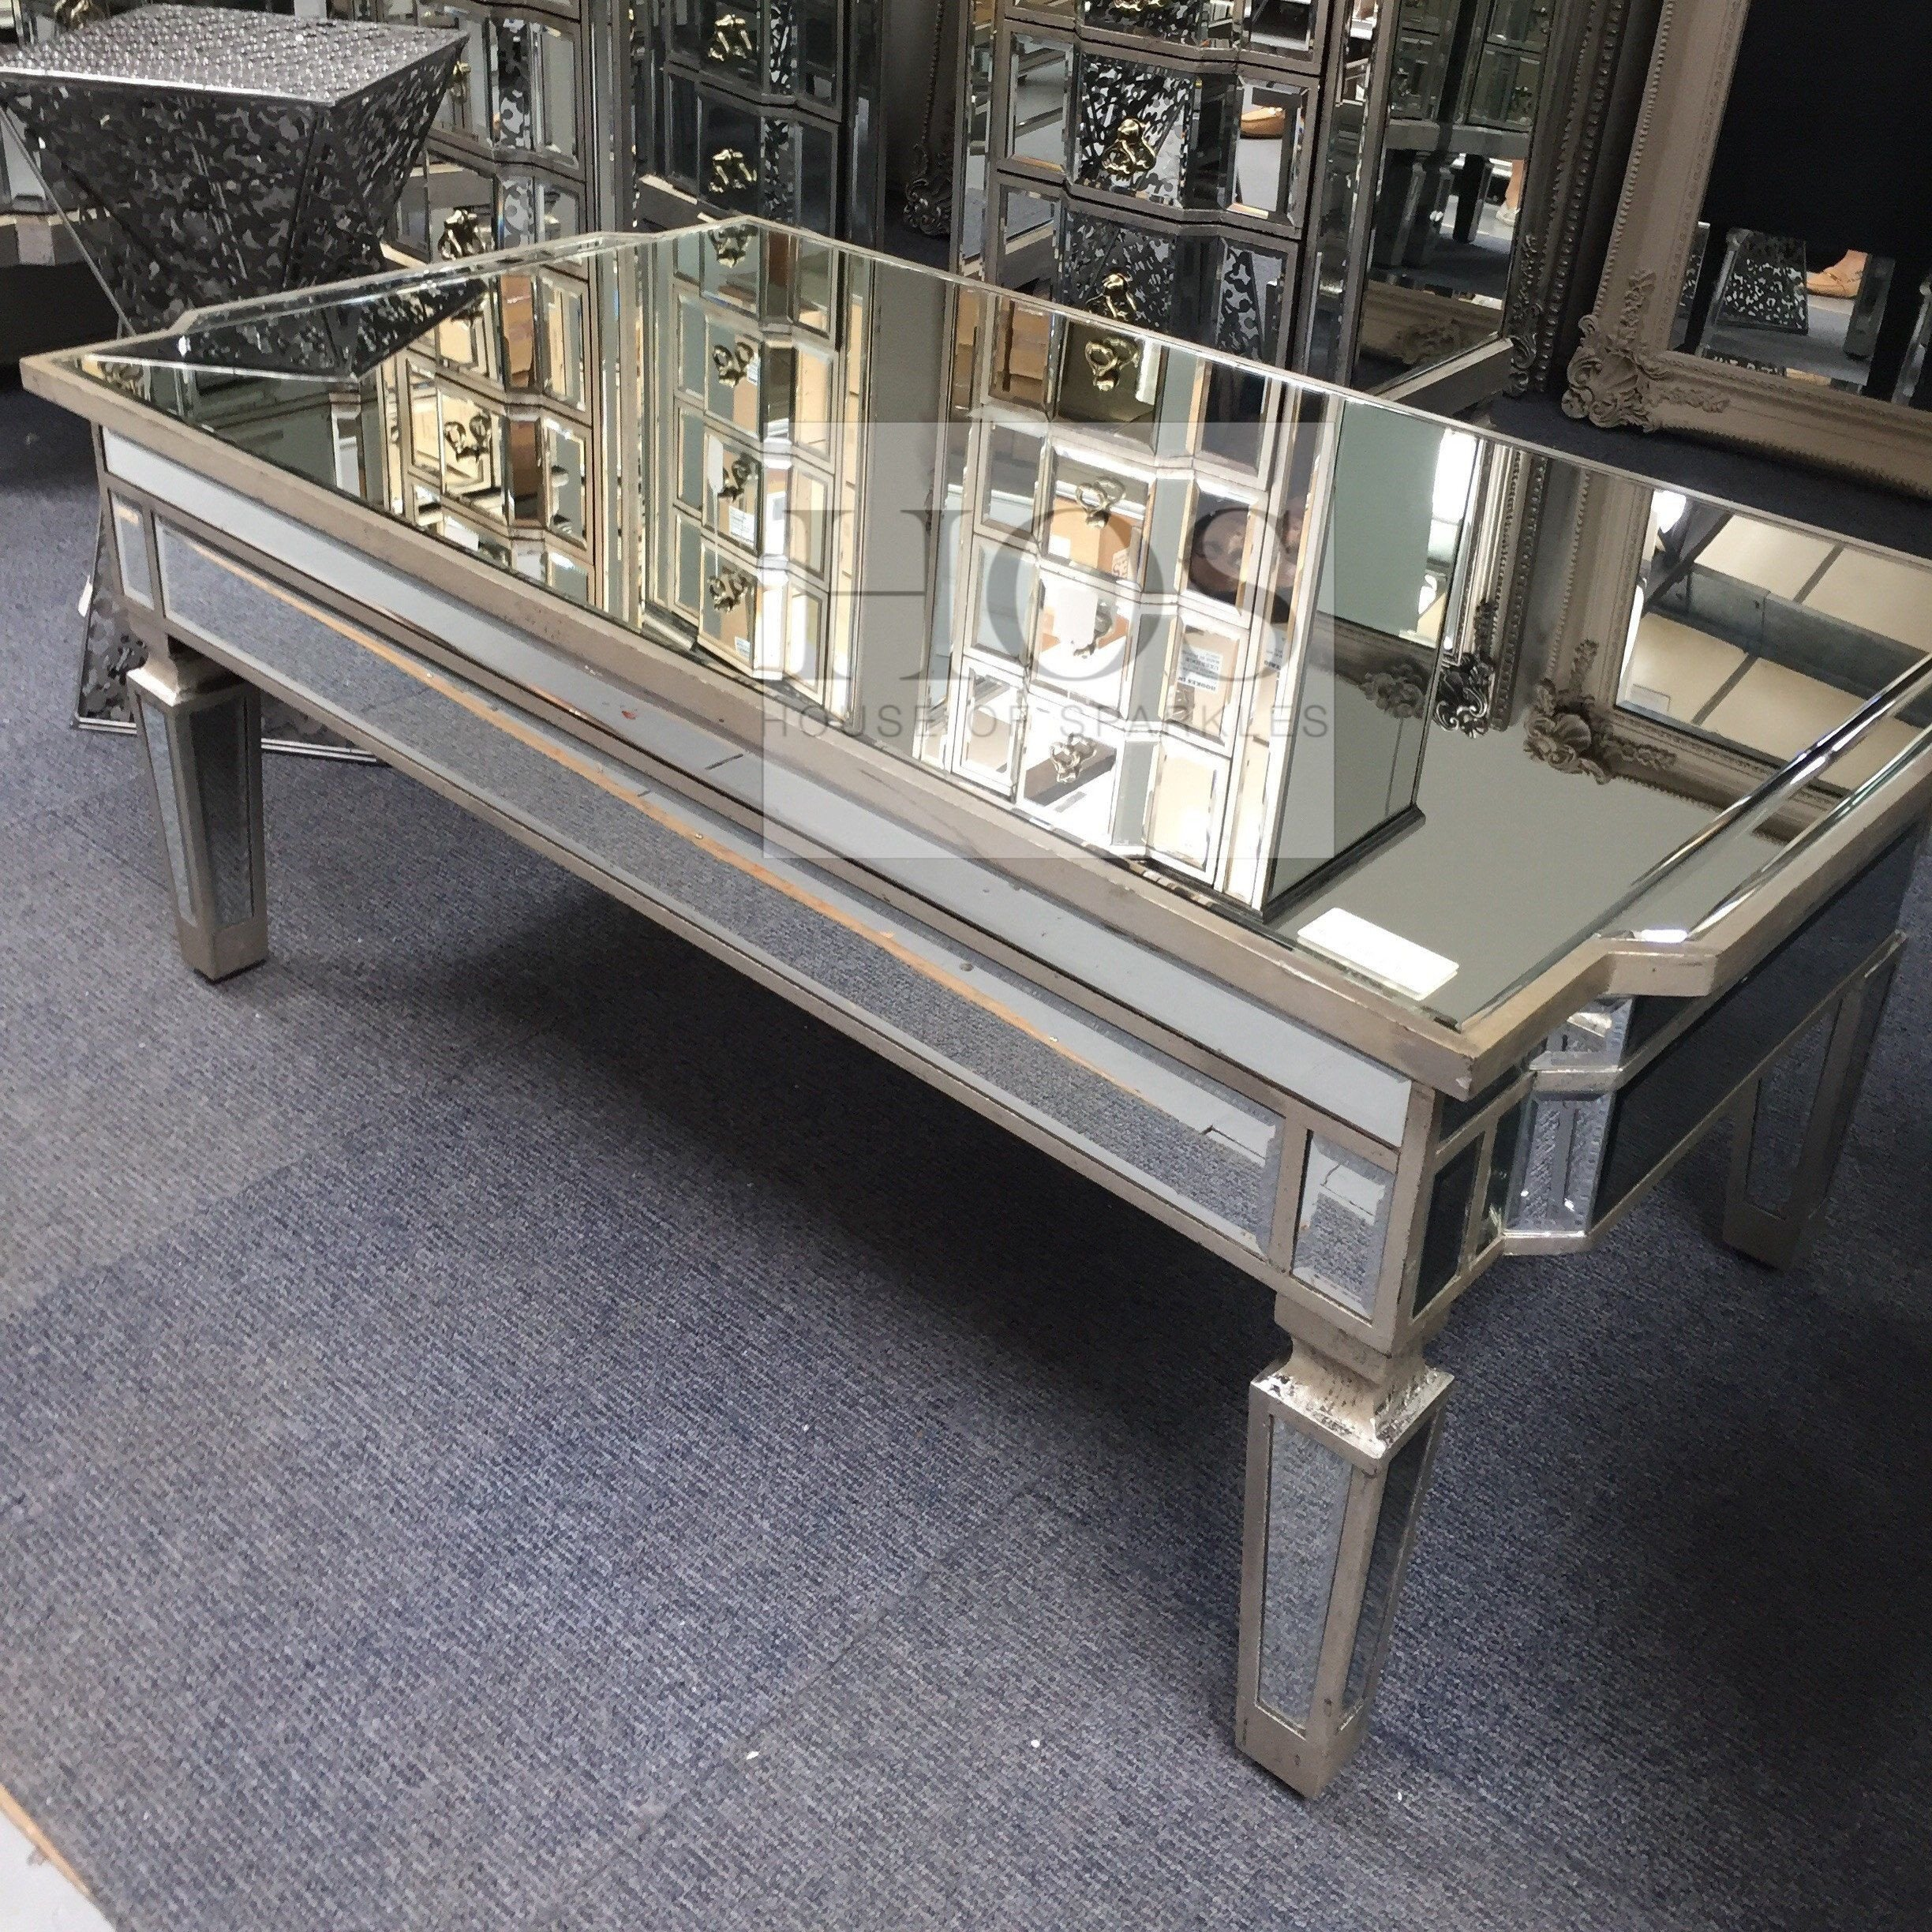 antique mirrored coffee table with storage - mirrored furniture - sparkle HVKGIRJ